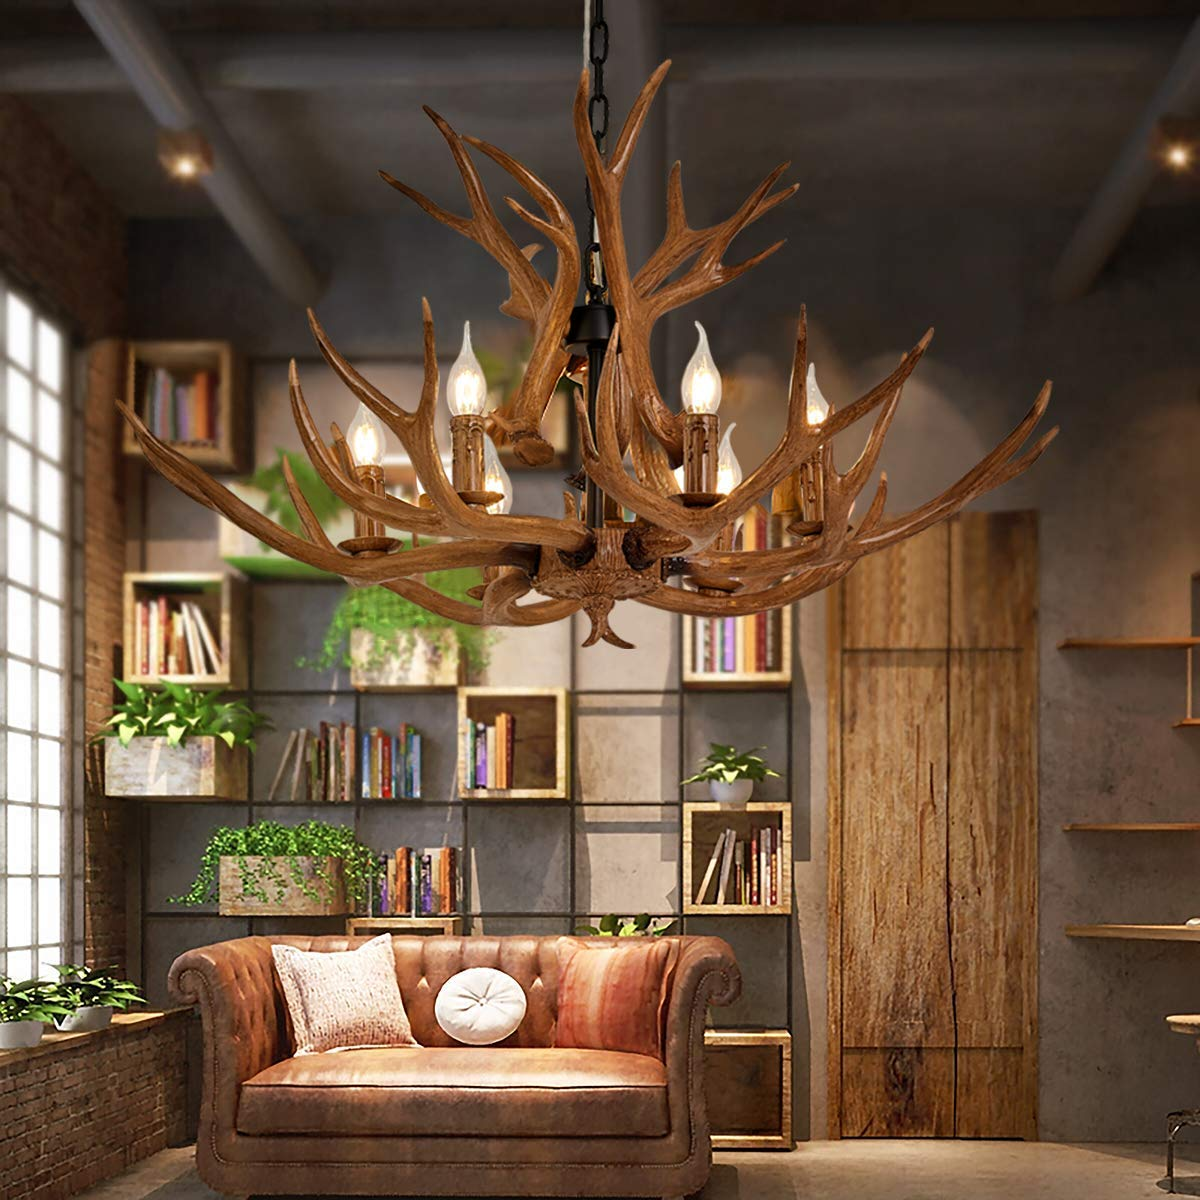 Light Antler Chandeliers Fixtures Resin Deer Antlers Dining Room Lighting Fixtures Hanging Indoor Decorative Twig Lights for Living Room/Bar/Cafe/Dining Room